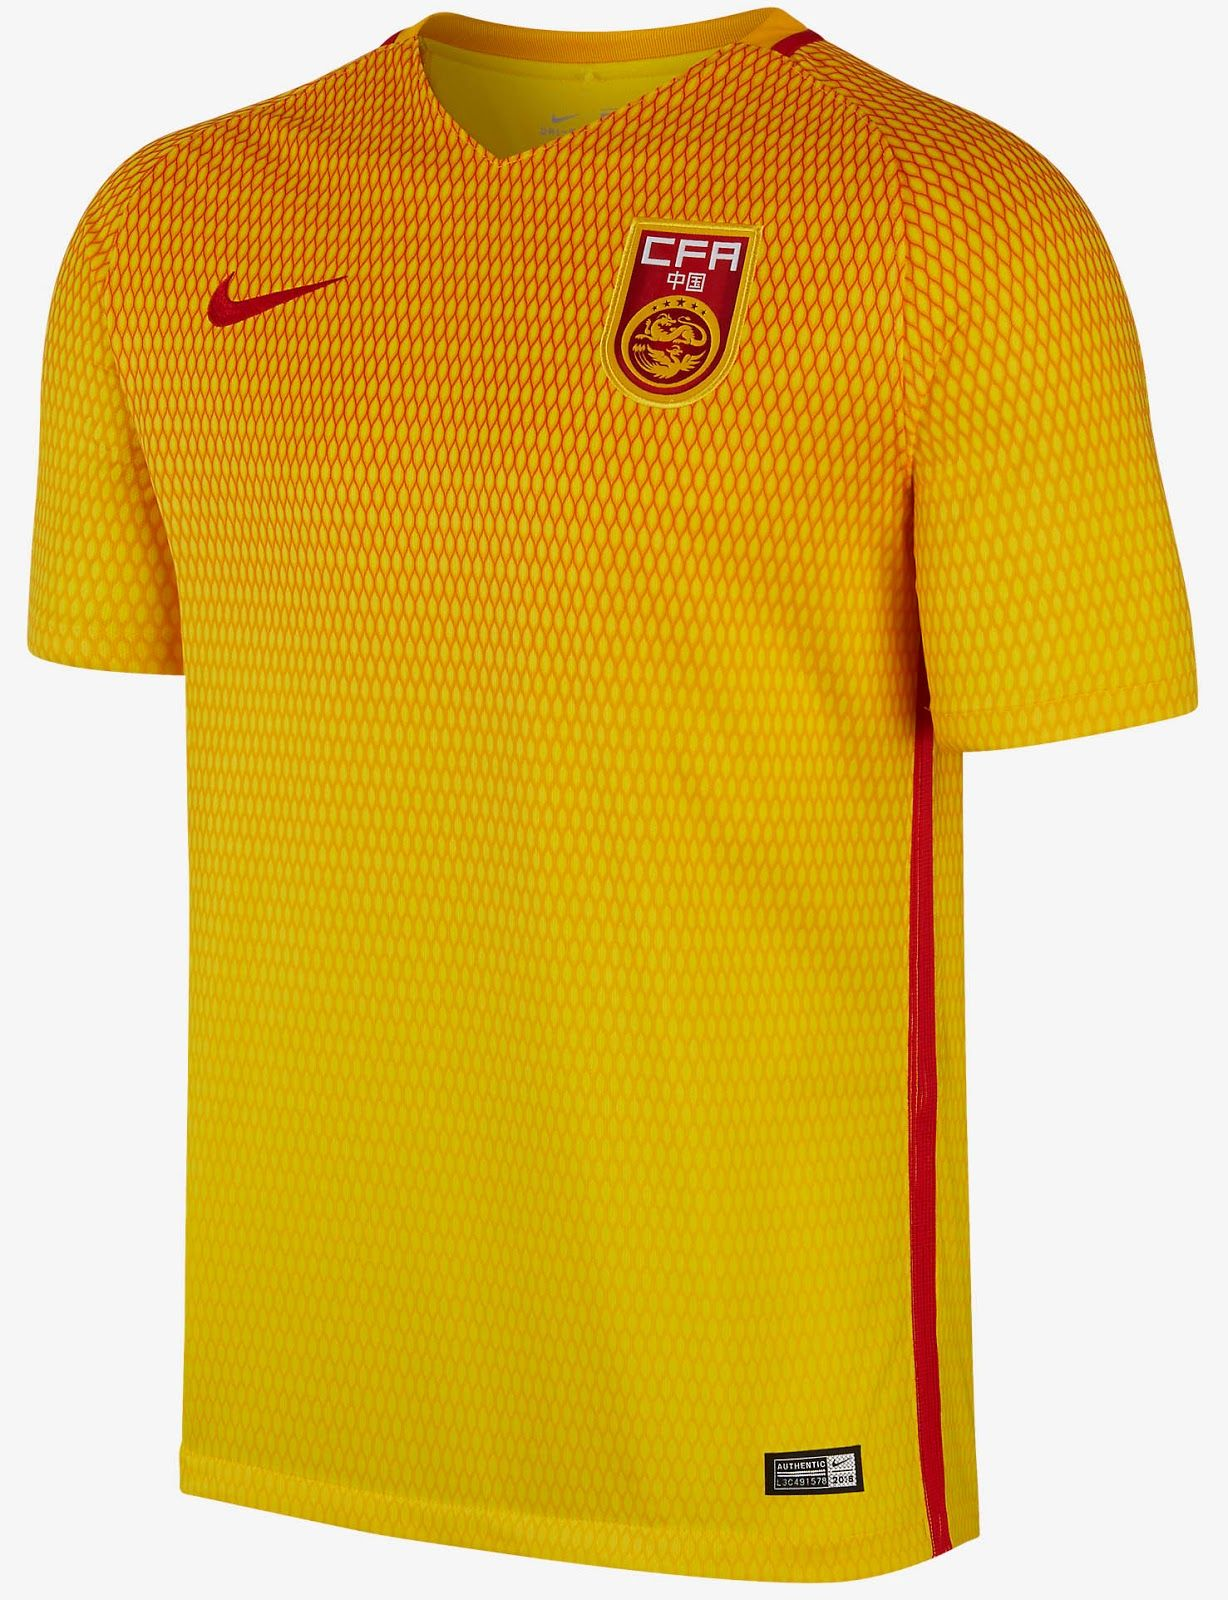 100% top quality look out for best sneakers The new Nike China 2016 Home and Away Kits boast outstanding ...